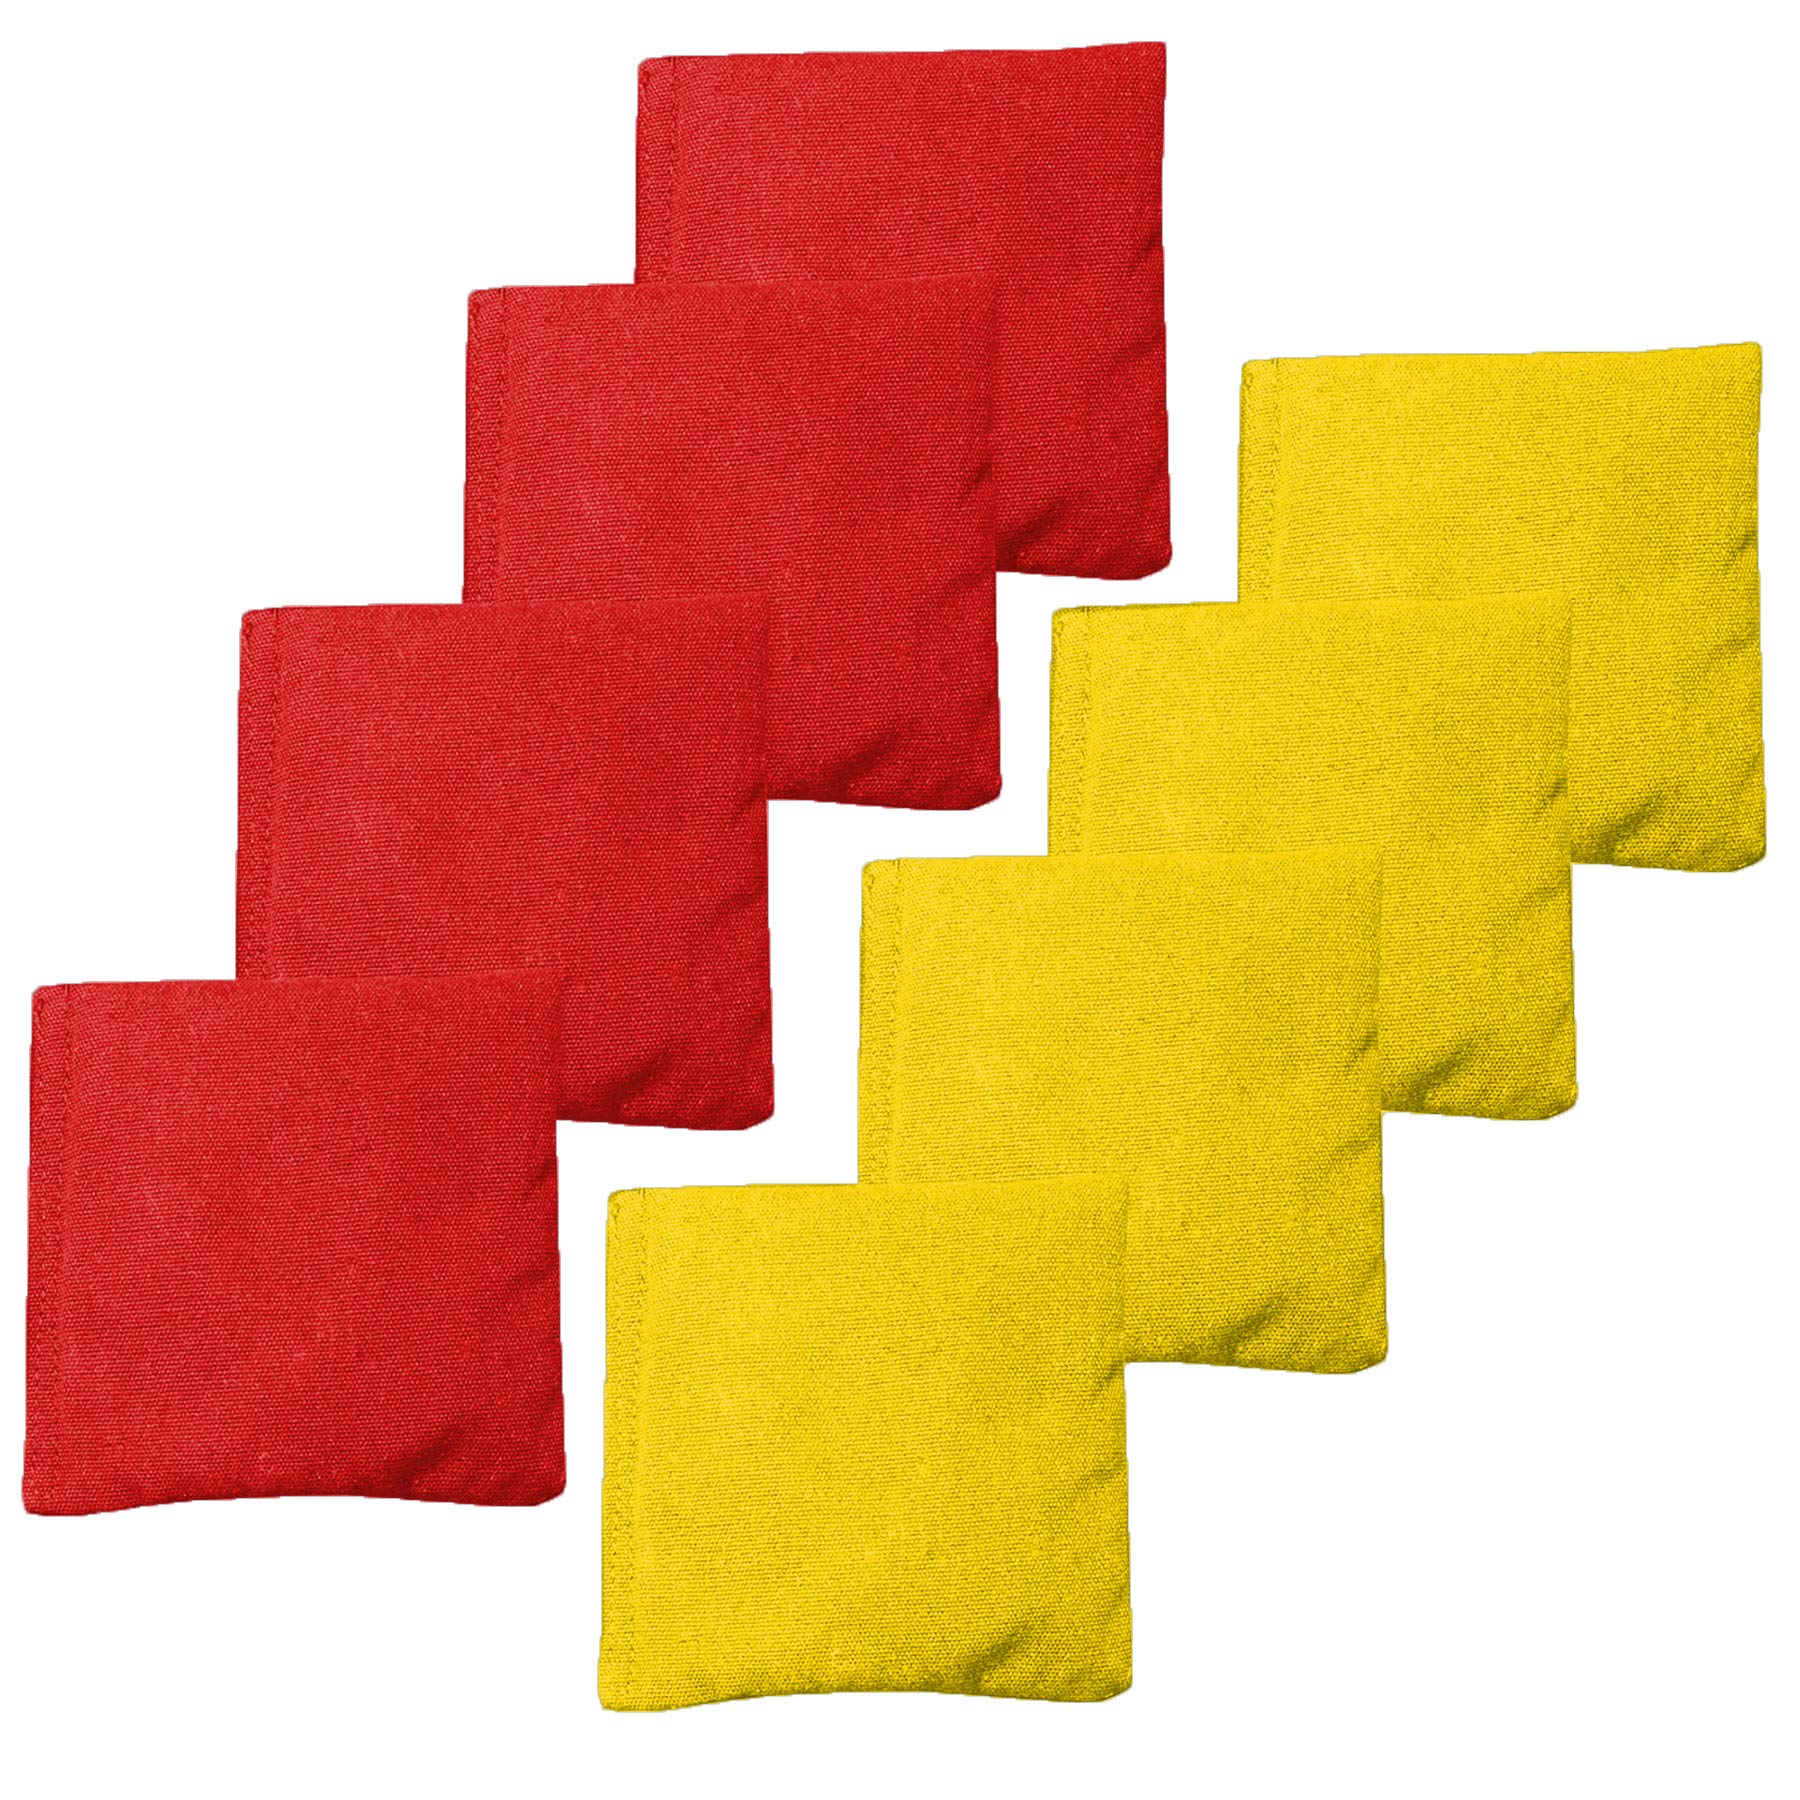 Play Platoon Weather Resistant Cornhole Bean Bags Set of 8 - Red & Yellow by Play Platoon